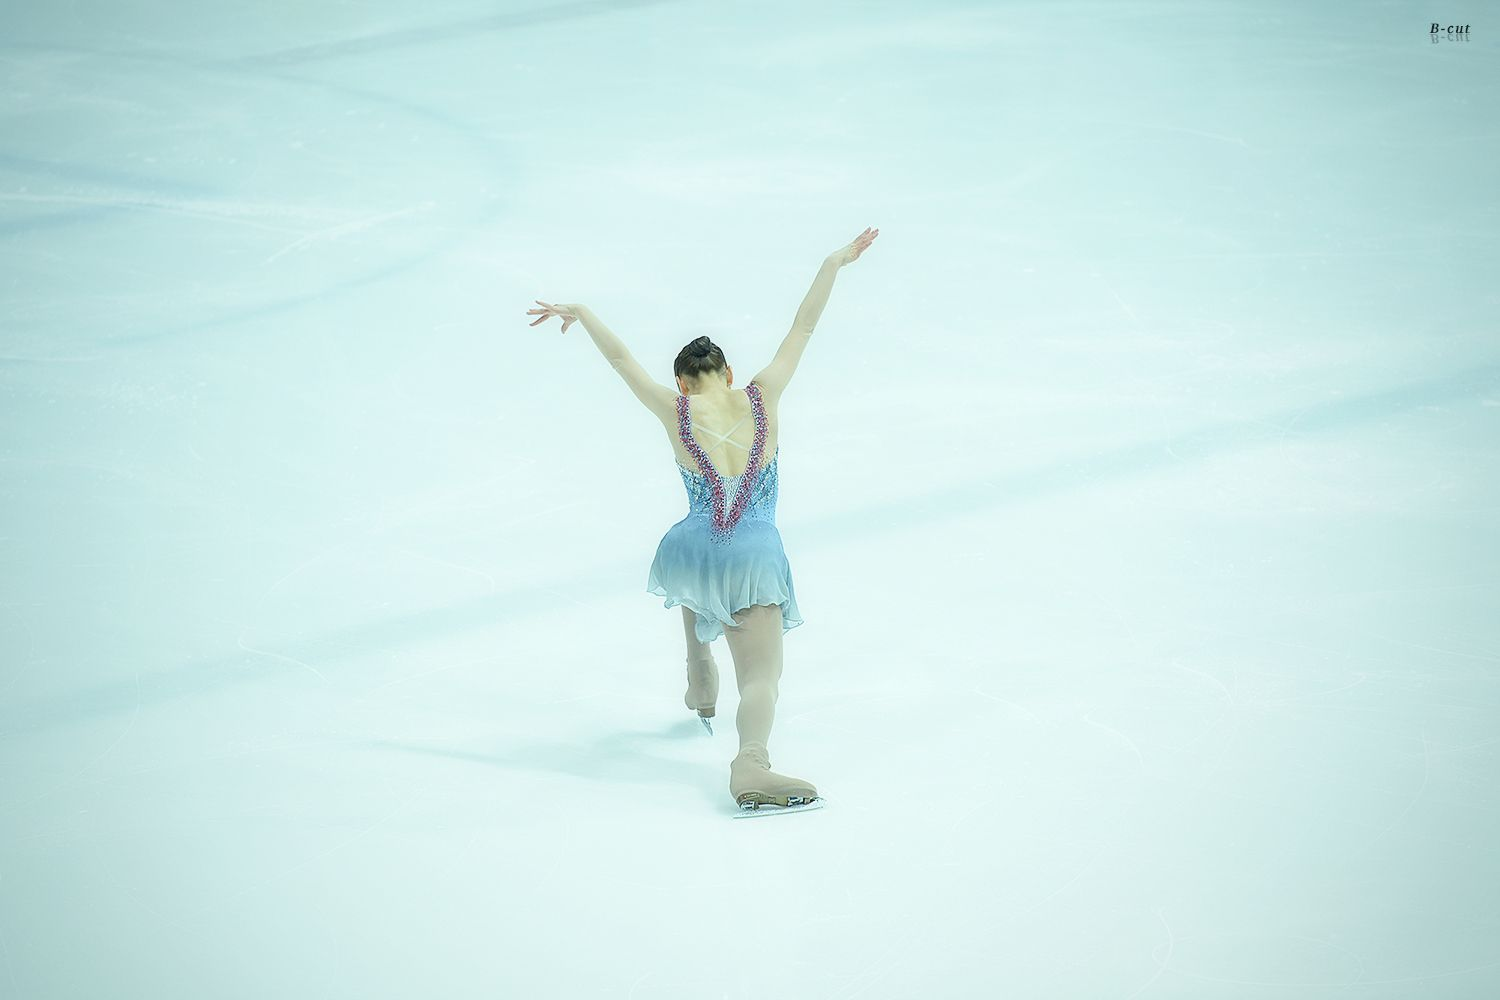 20130105 Korea Figure Skating Championship, Kiss of the Vampire -22 @yunaaaa #YunaKIM